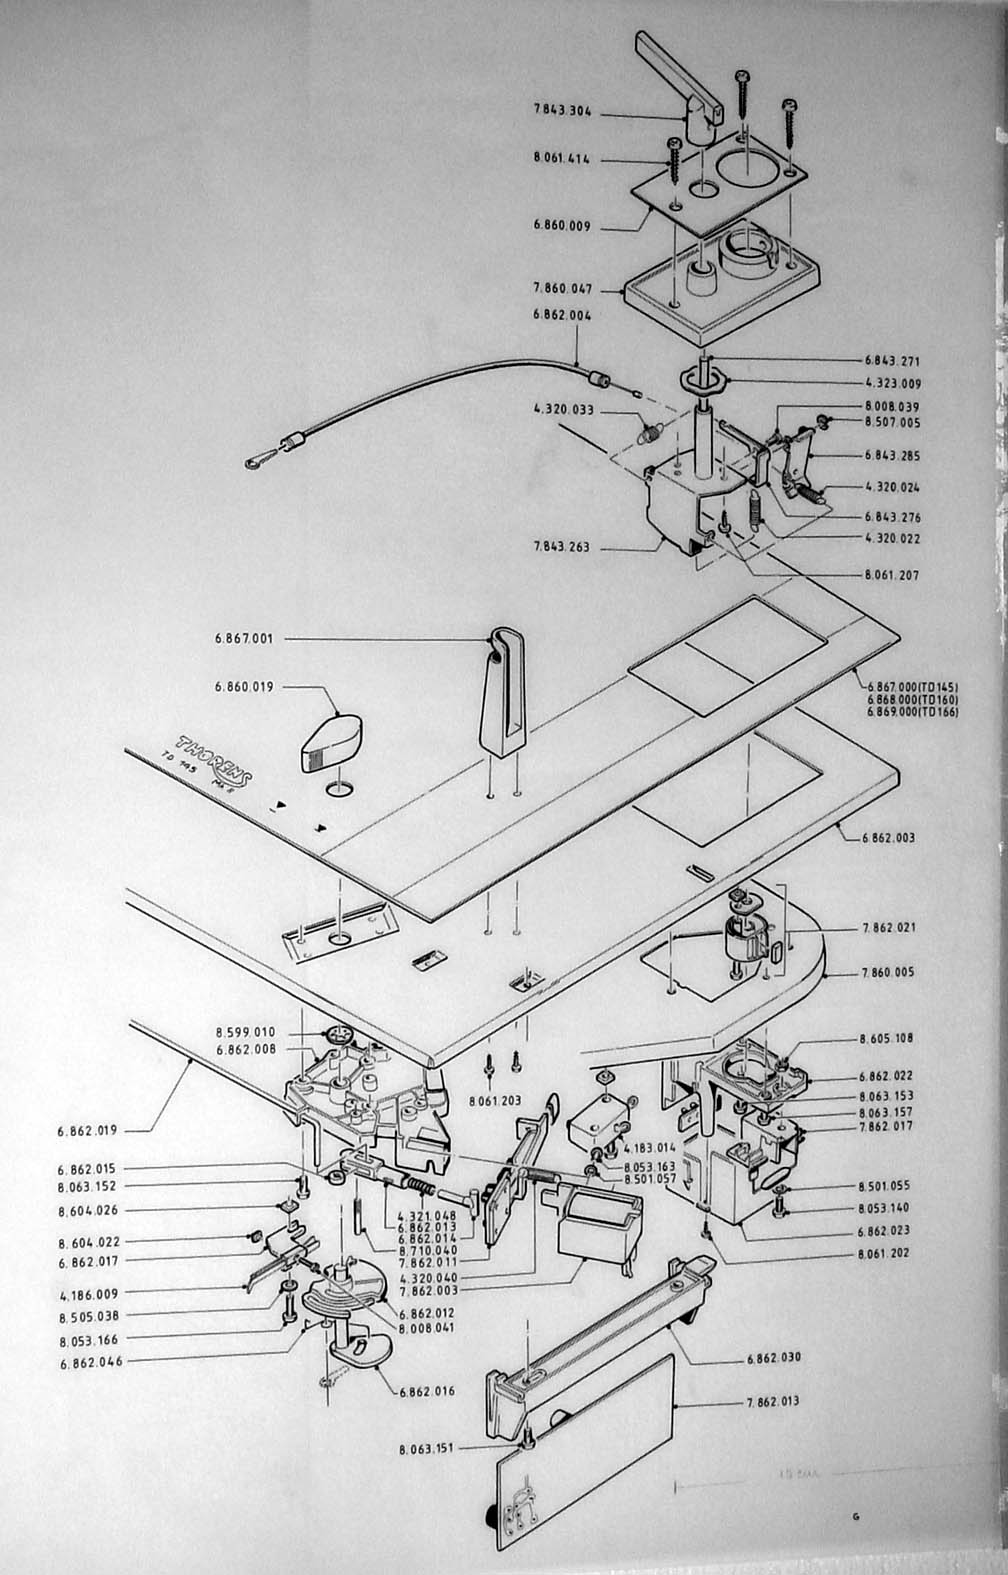 Dremel Wiring Diagram Car Schematic Image Defrost Timer Frigidaire Frs20wrh Related Keywords Suggestions Also Bosch 4000 Table Saw On